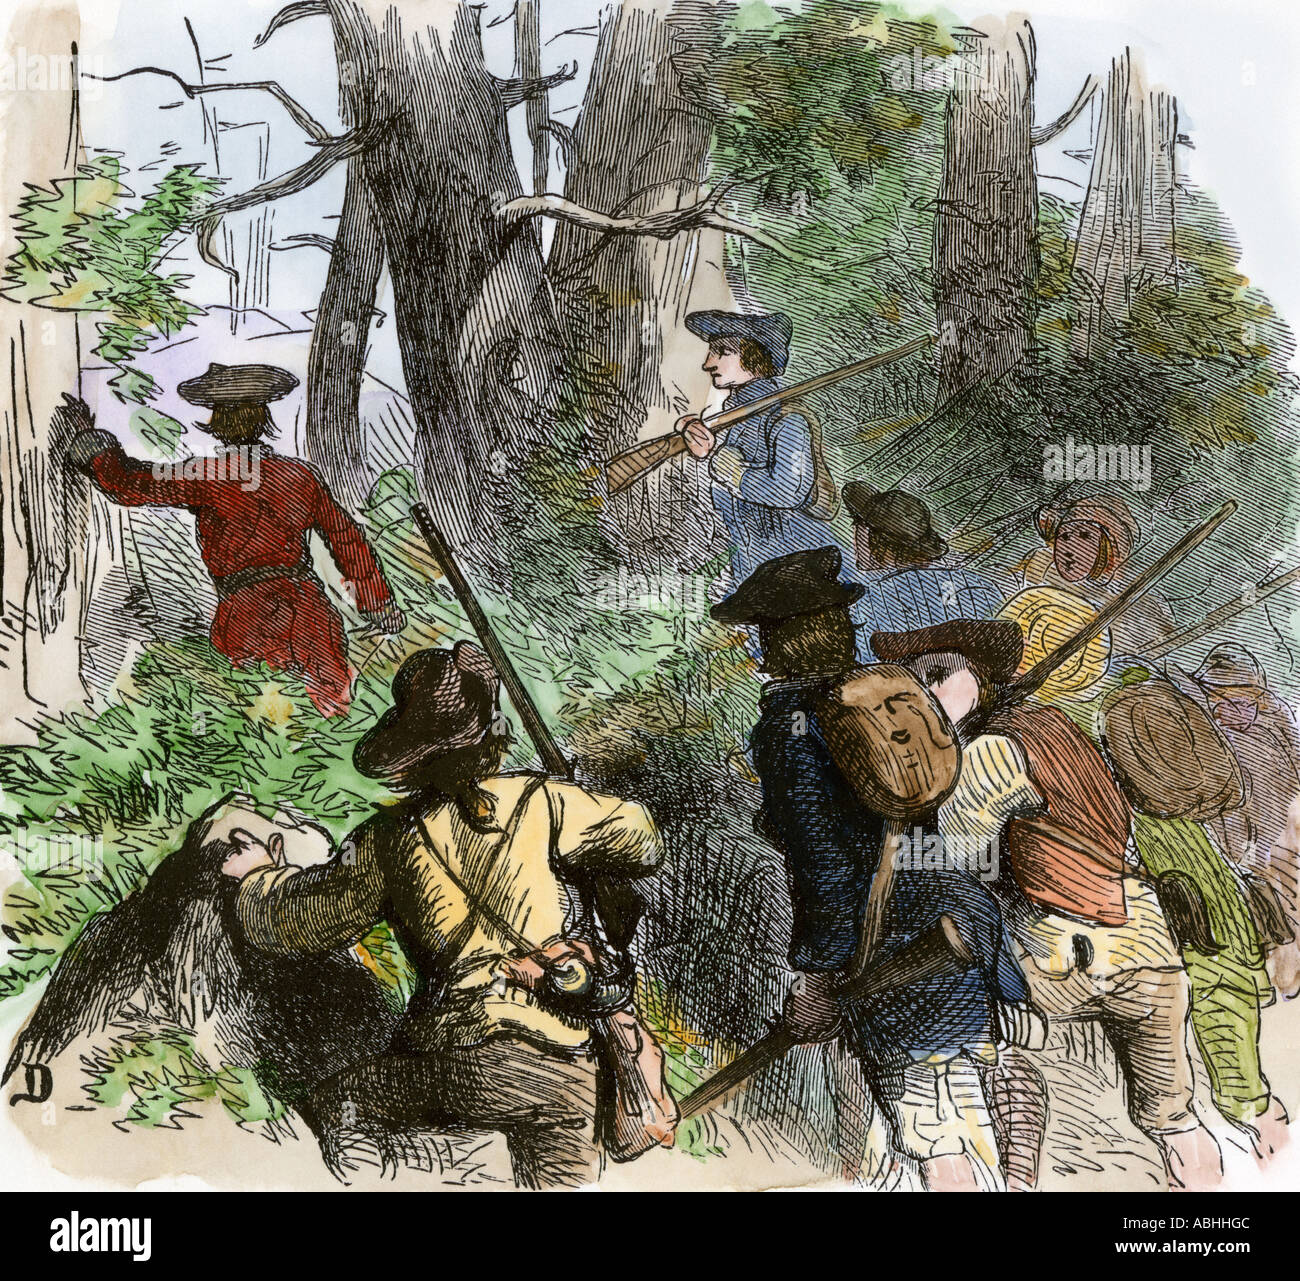 Colonial militia crossing the mountains during the French and Indian War. Hand-colored woodcut - Stock Image